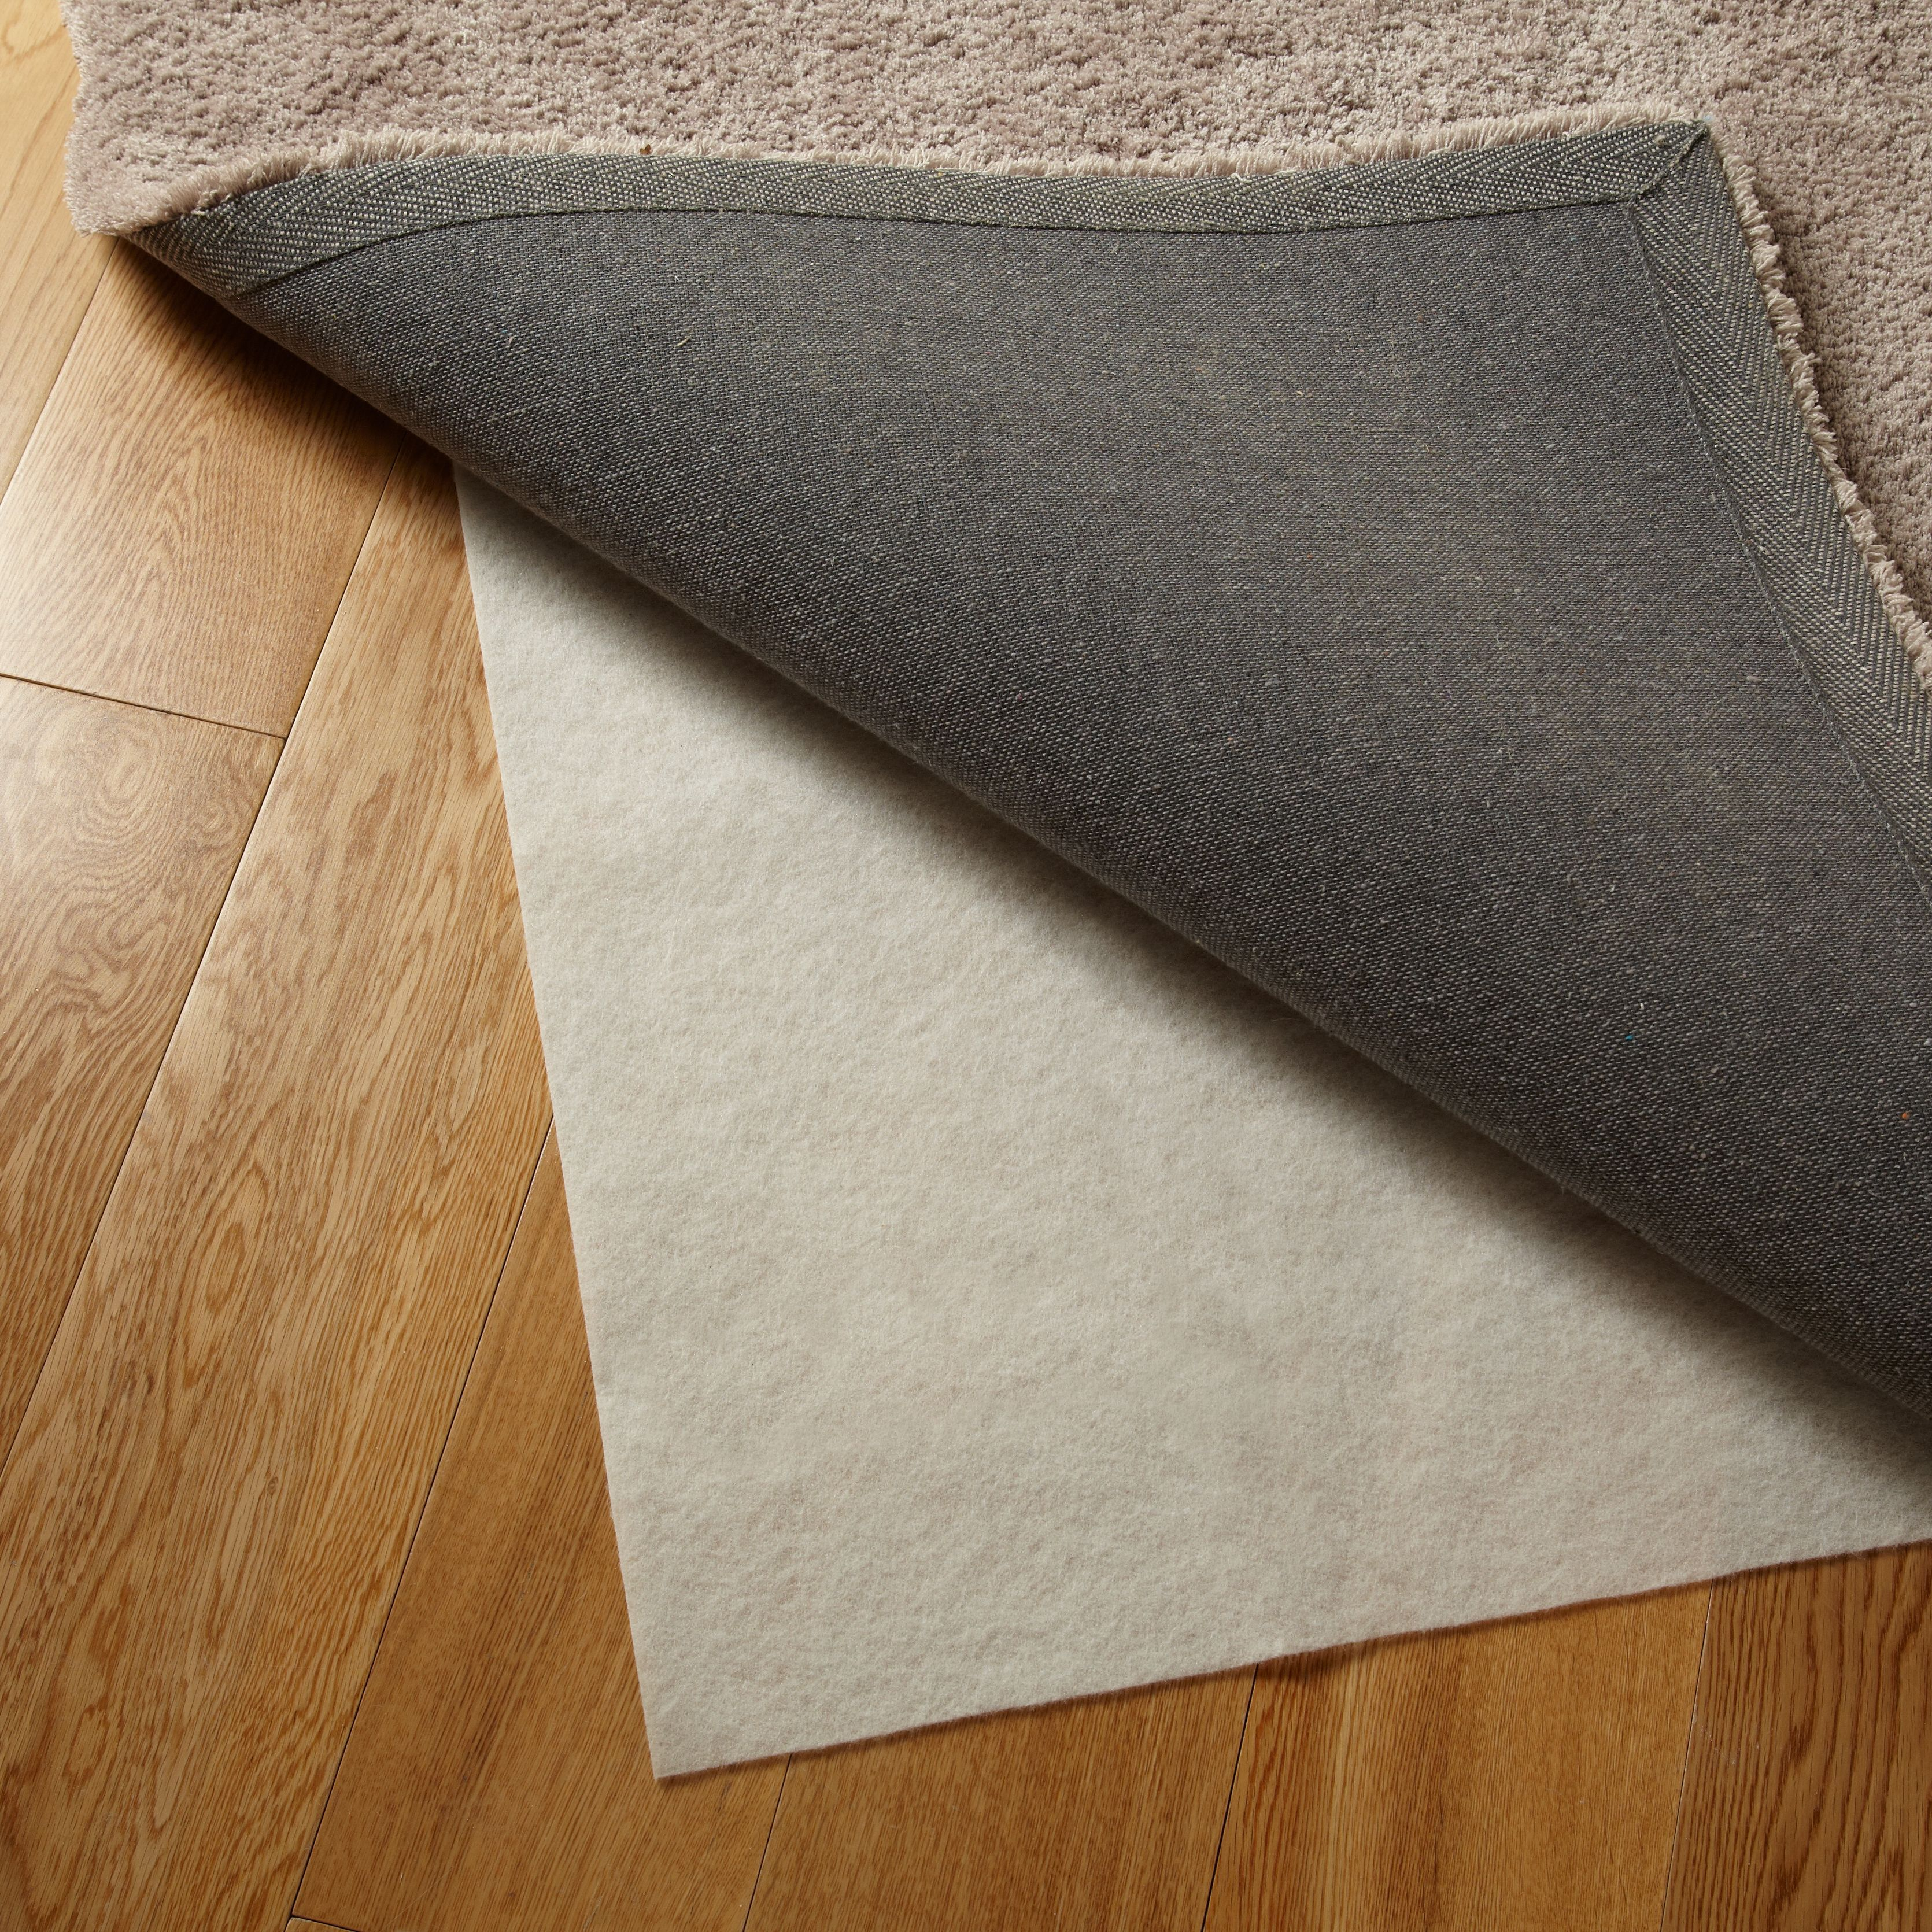 redglobalmxorg l wwwredglobalmxorg thick carpet pad rug does what floors mean for density hardwood pads